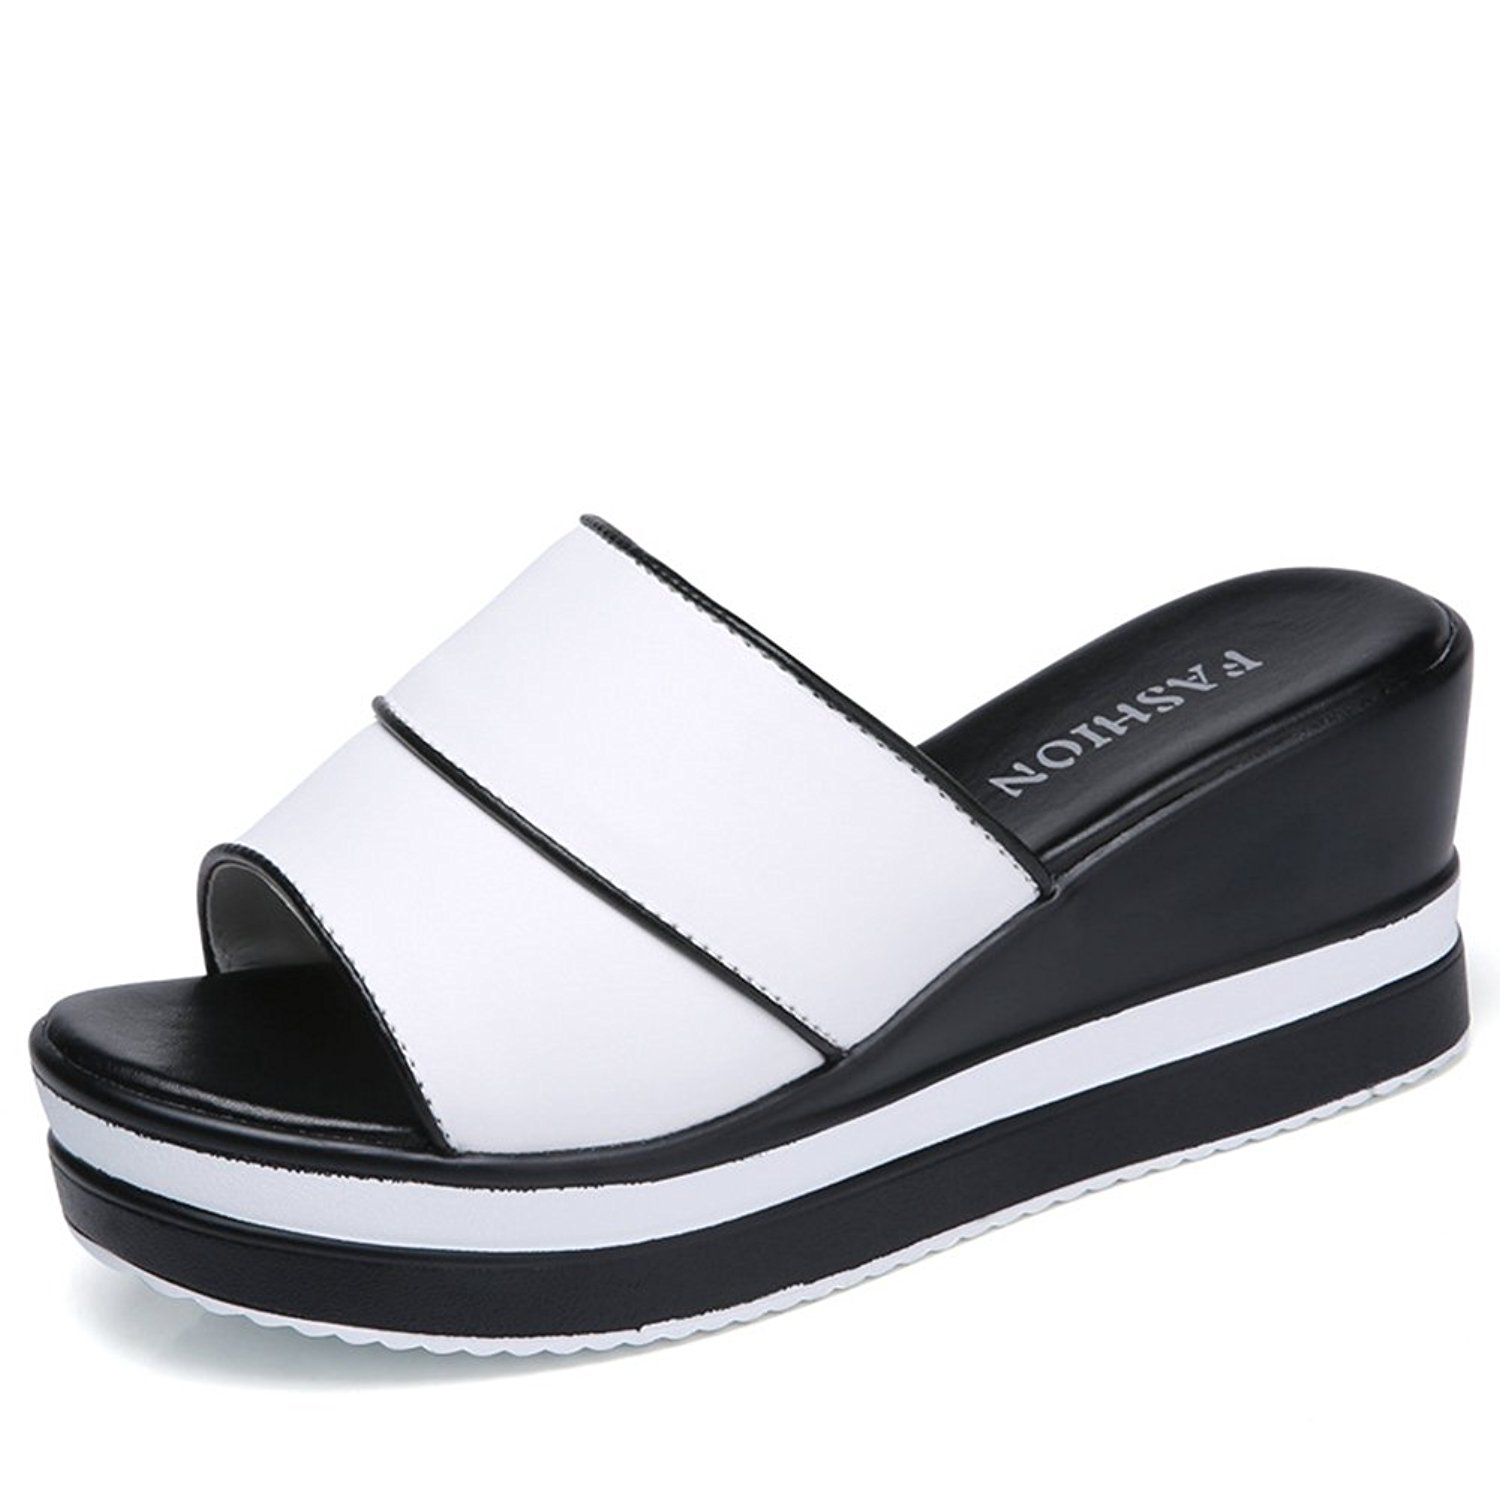 Btrada Womens Open Toe Platform Slides Summer Ladies Beach